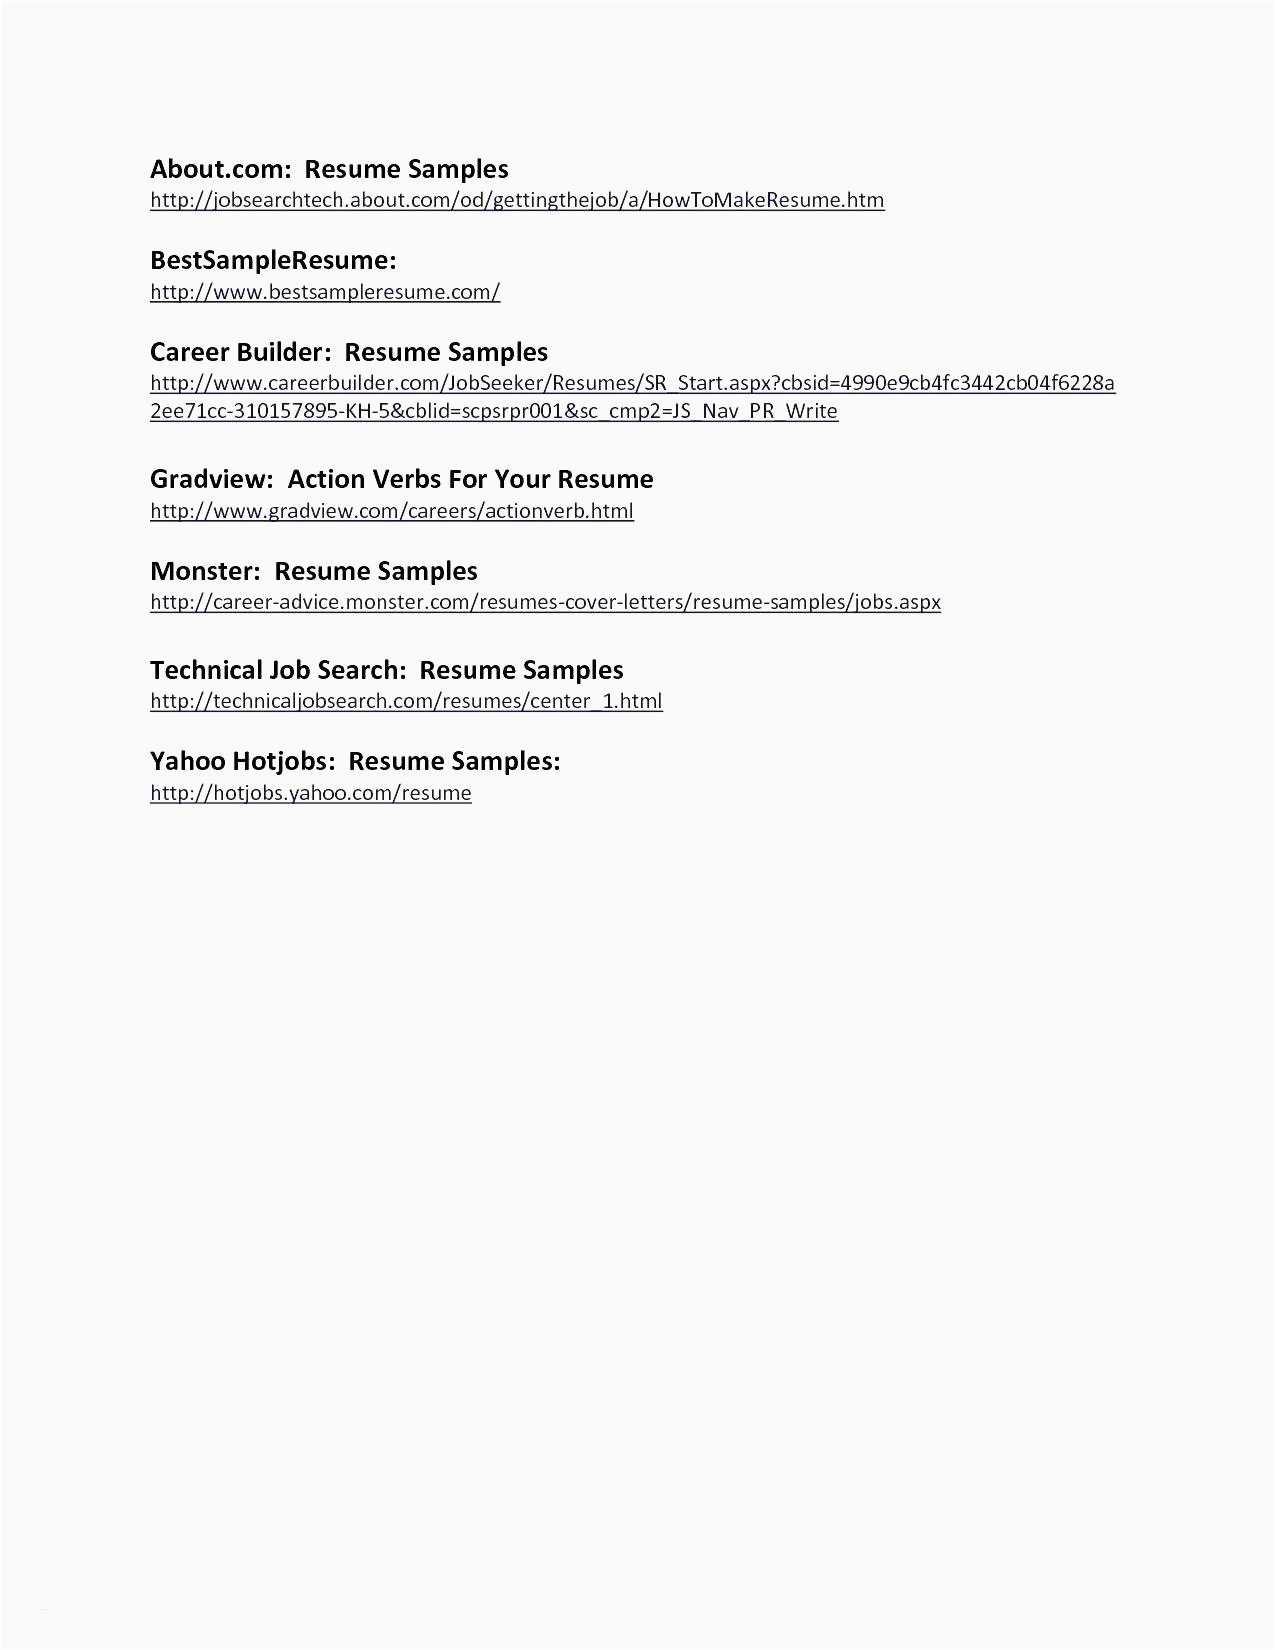 Freshman College Student Resume Examples - College Freshman Resume Gallery College Freshman Resume New Entry